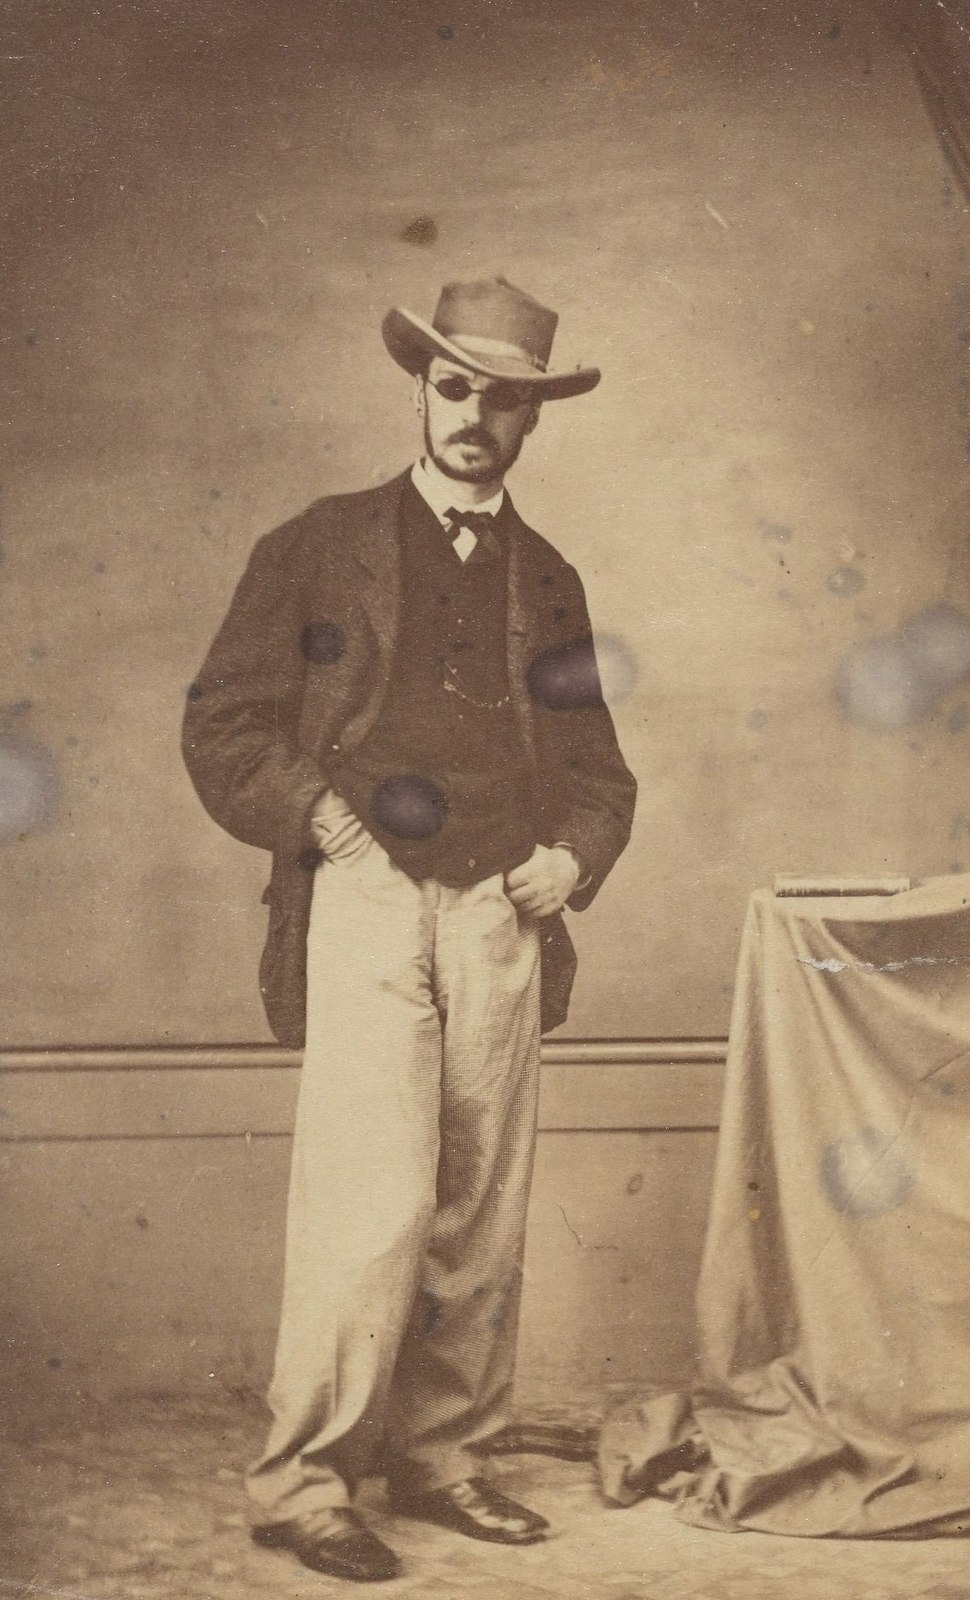 Houghton MS Am 1092 (1185) - William James in Brazil, 1865